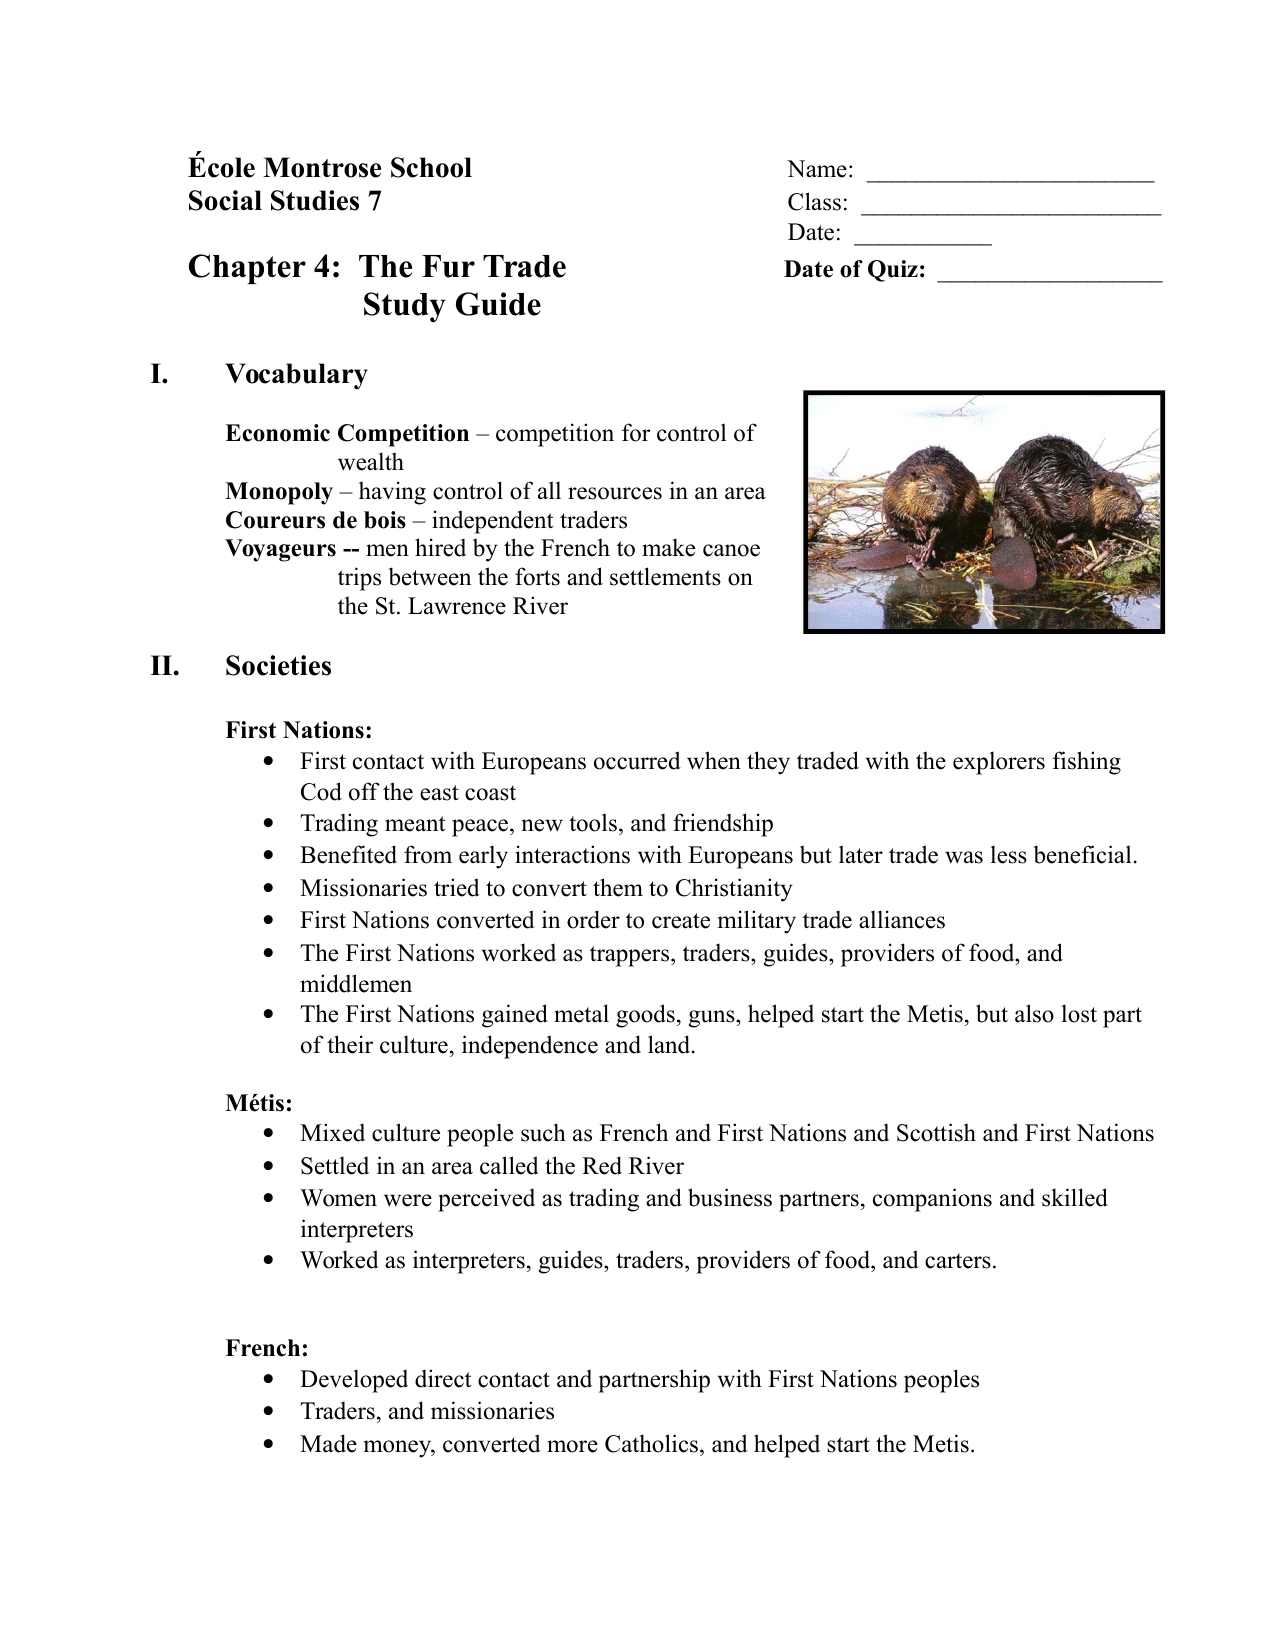 Our Canada Chapter 4 Study Guide